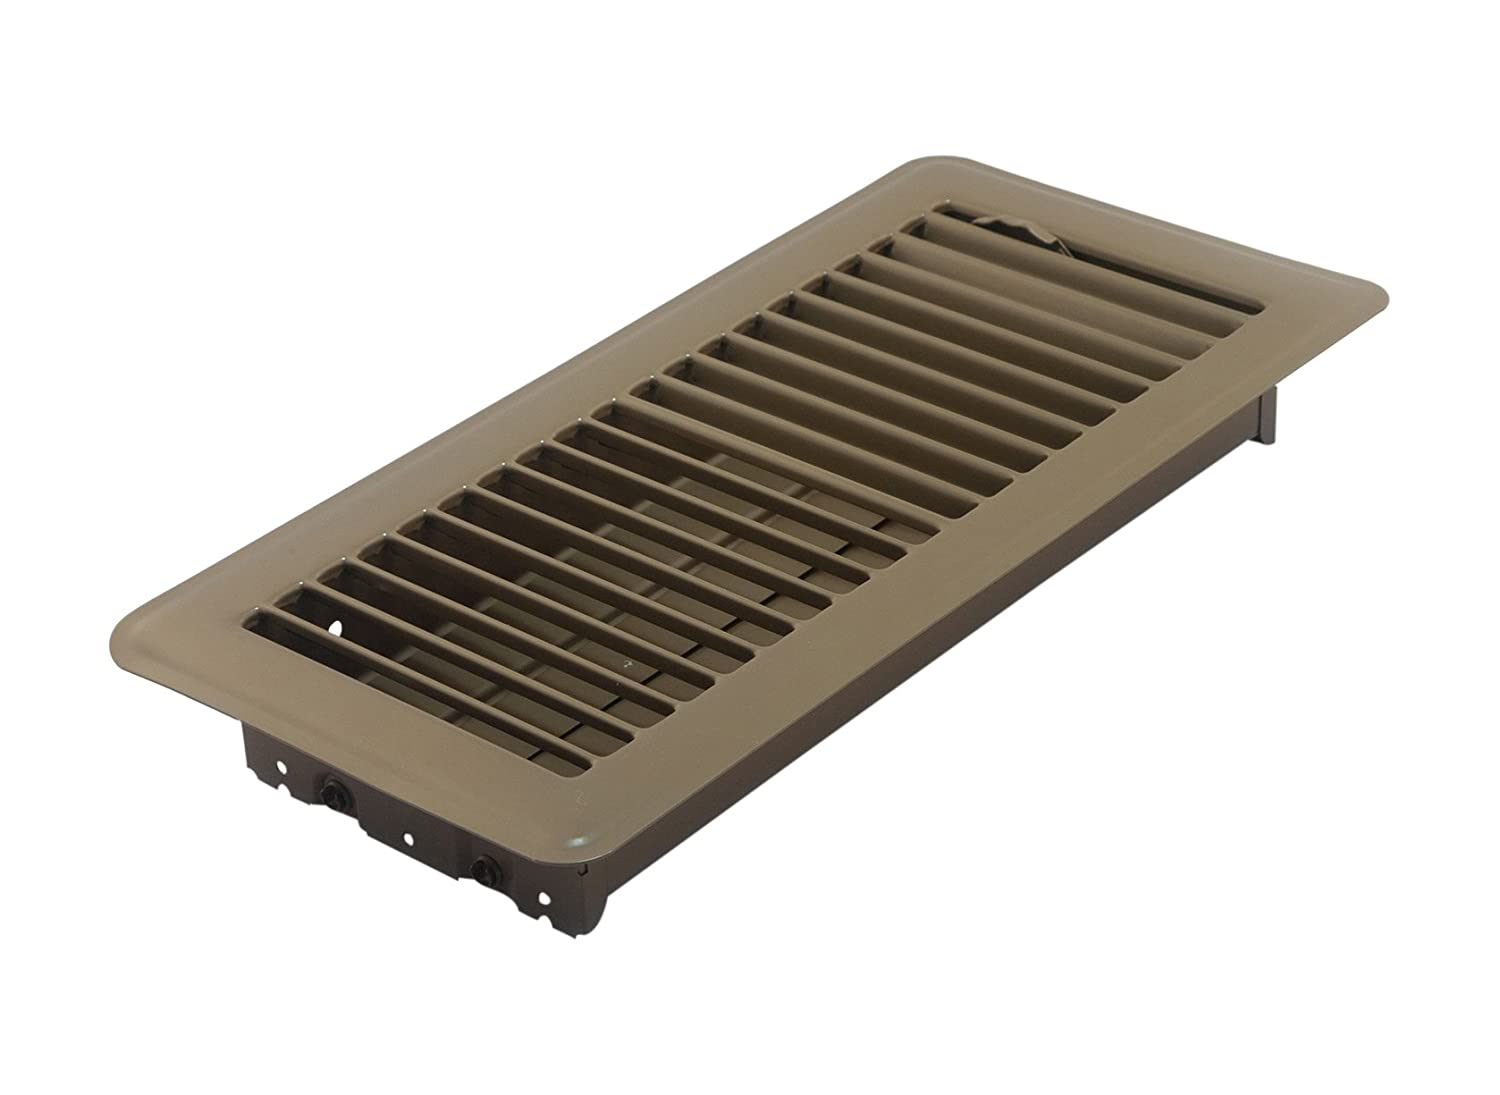 Accord ABFRBR414 Floor Register with Louvered Design, 4-Inch x 14-Inch(Duct Opening Measurements), Brown